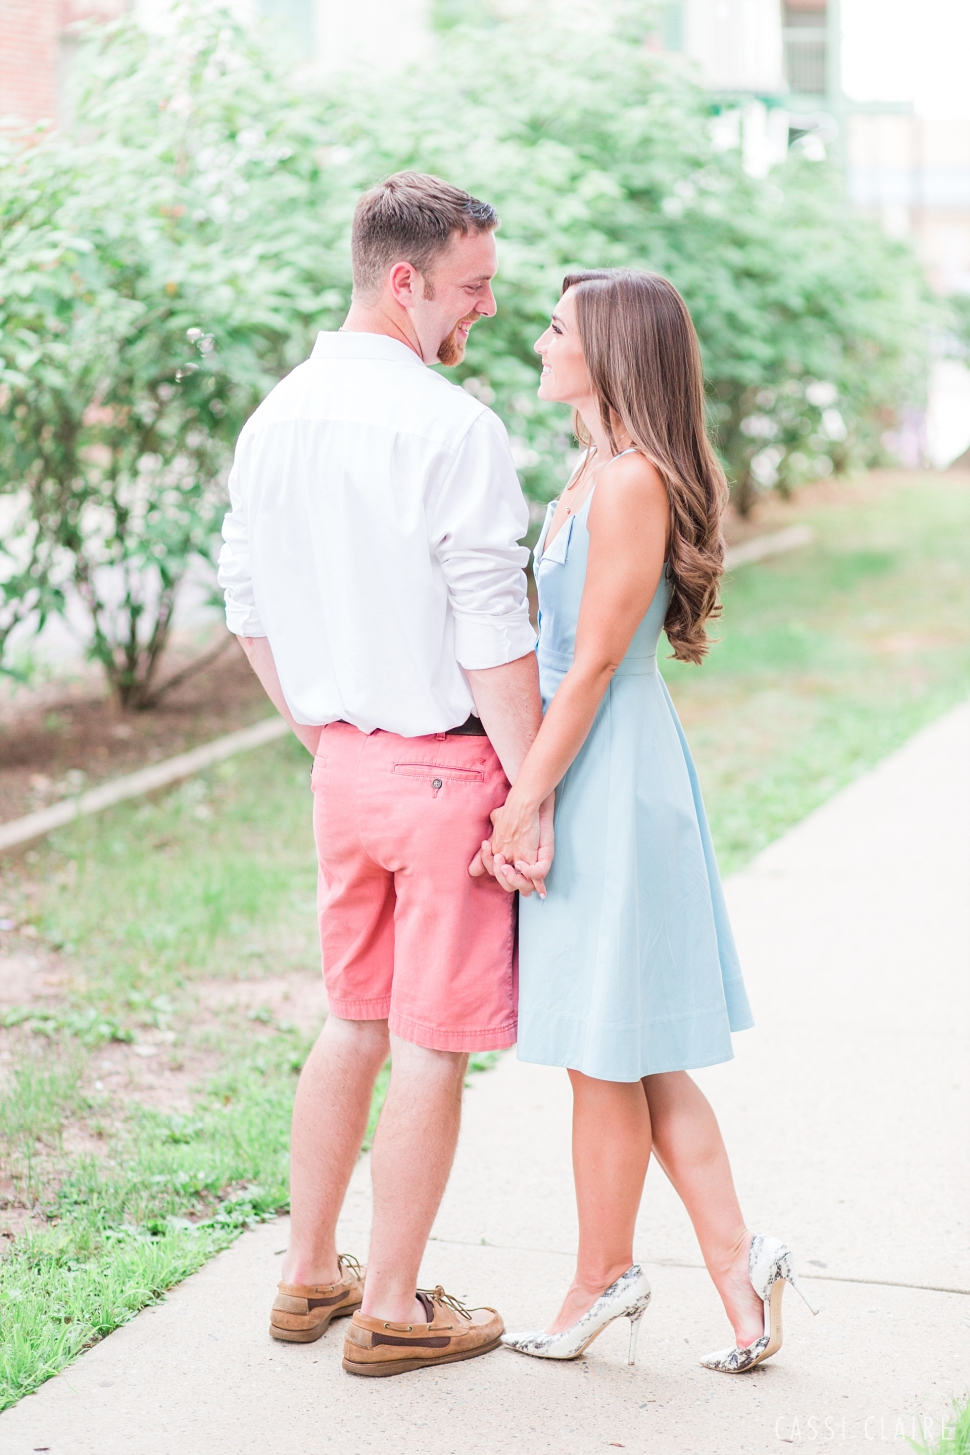 Somerville-NJ-Engagement-Photos-CassiClaire_16a.jpg